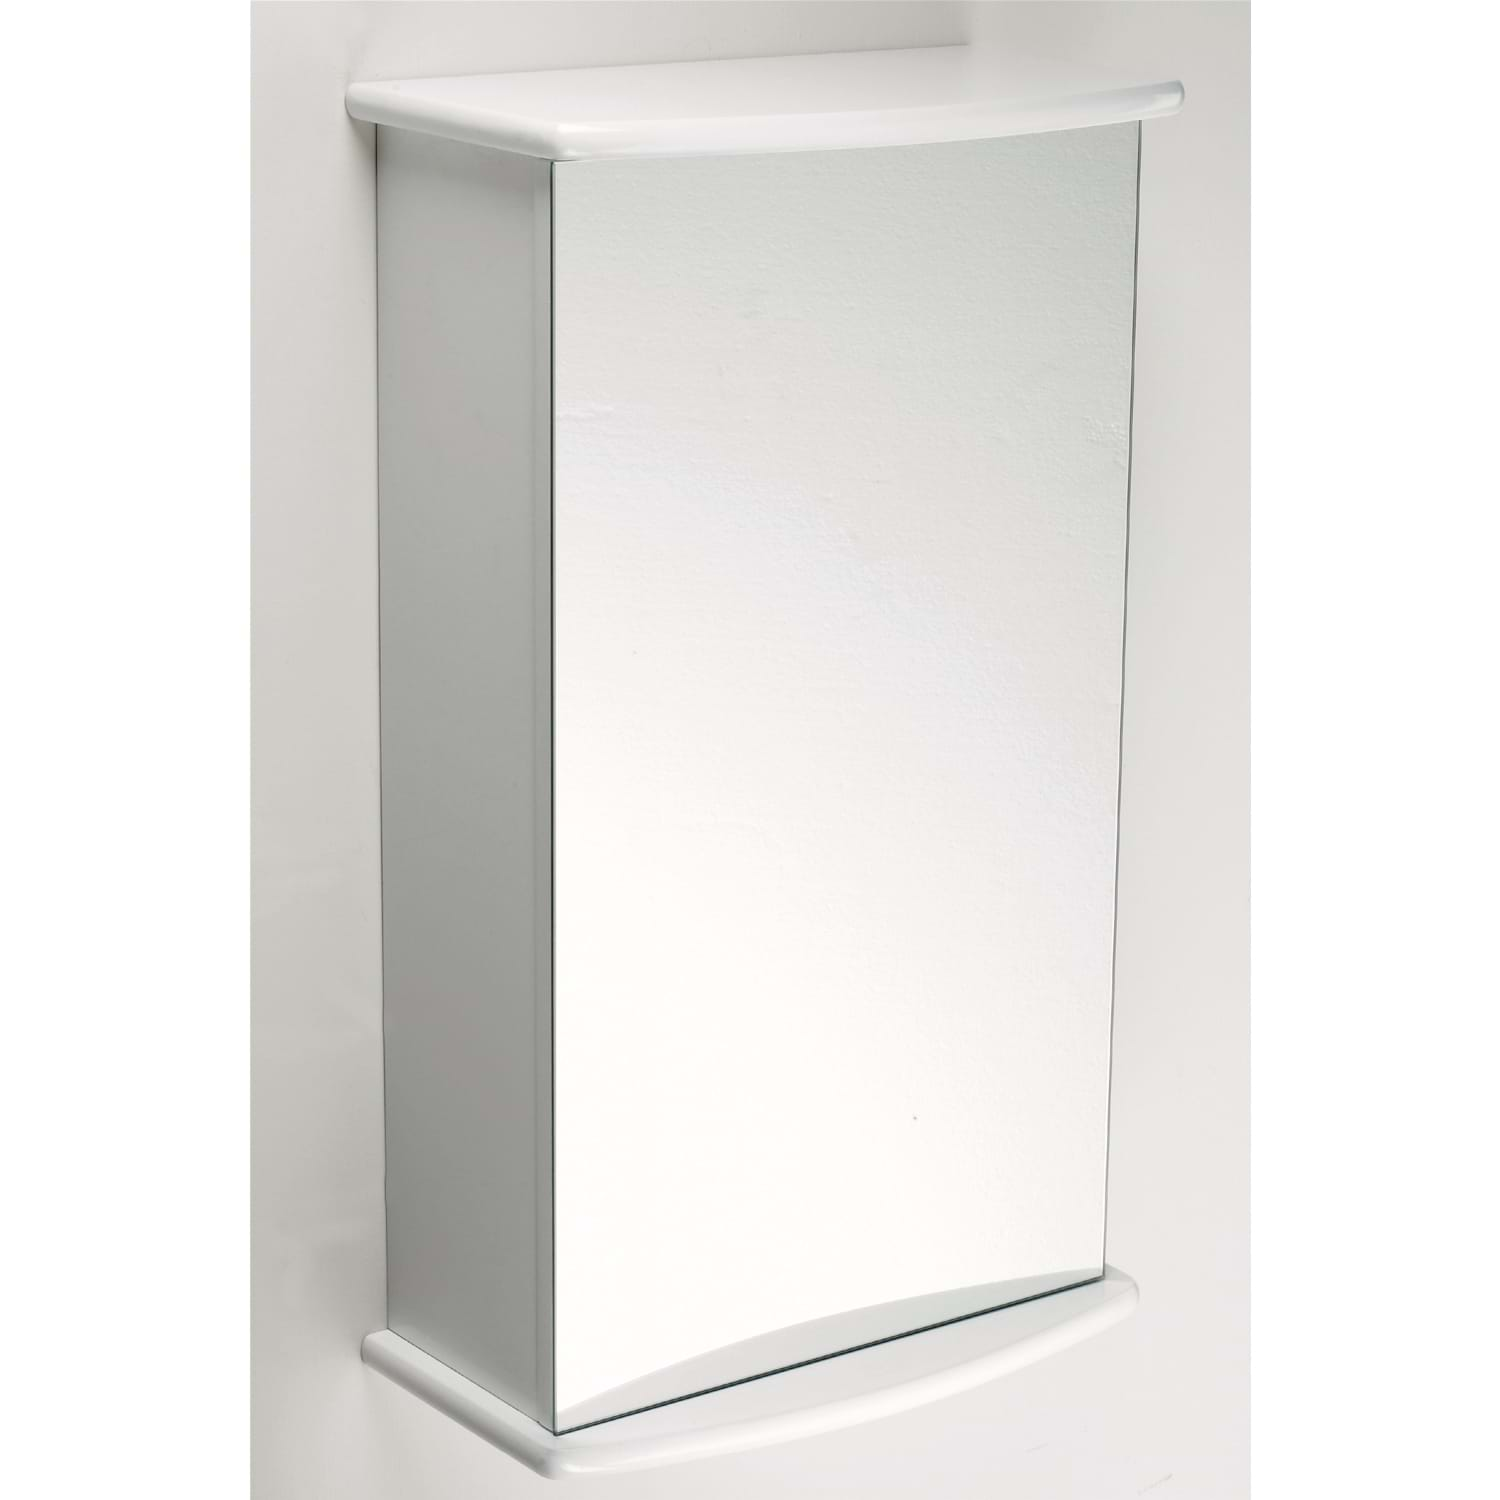 Lloyd pascal single door mirrored cabinet white for White mirrored cabinet